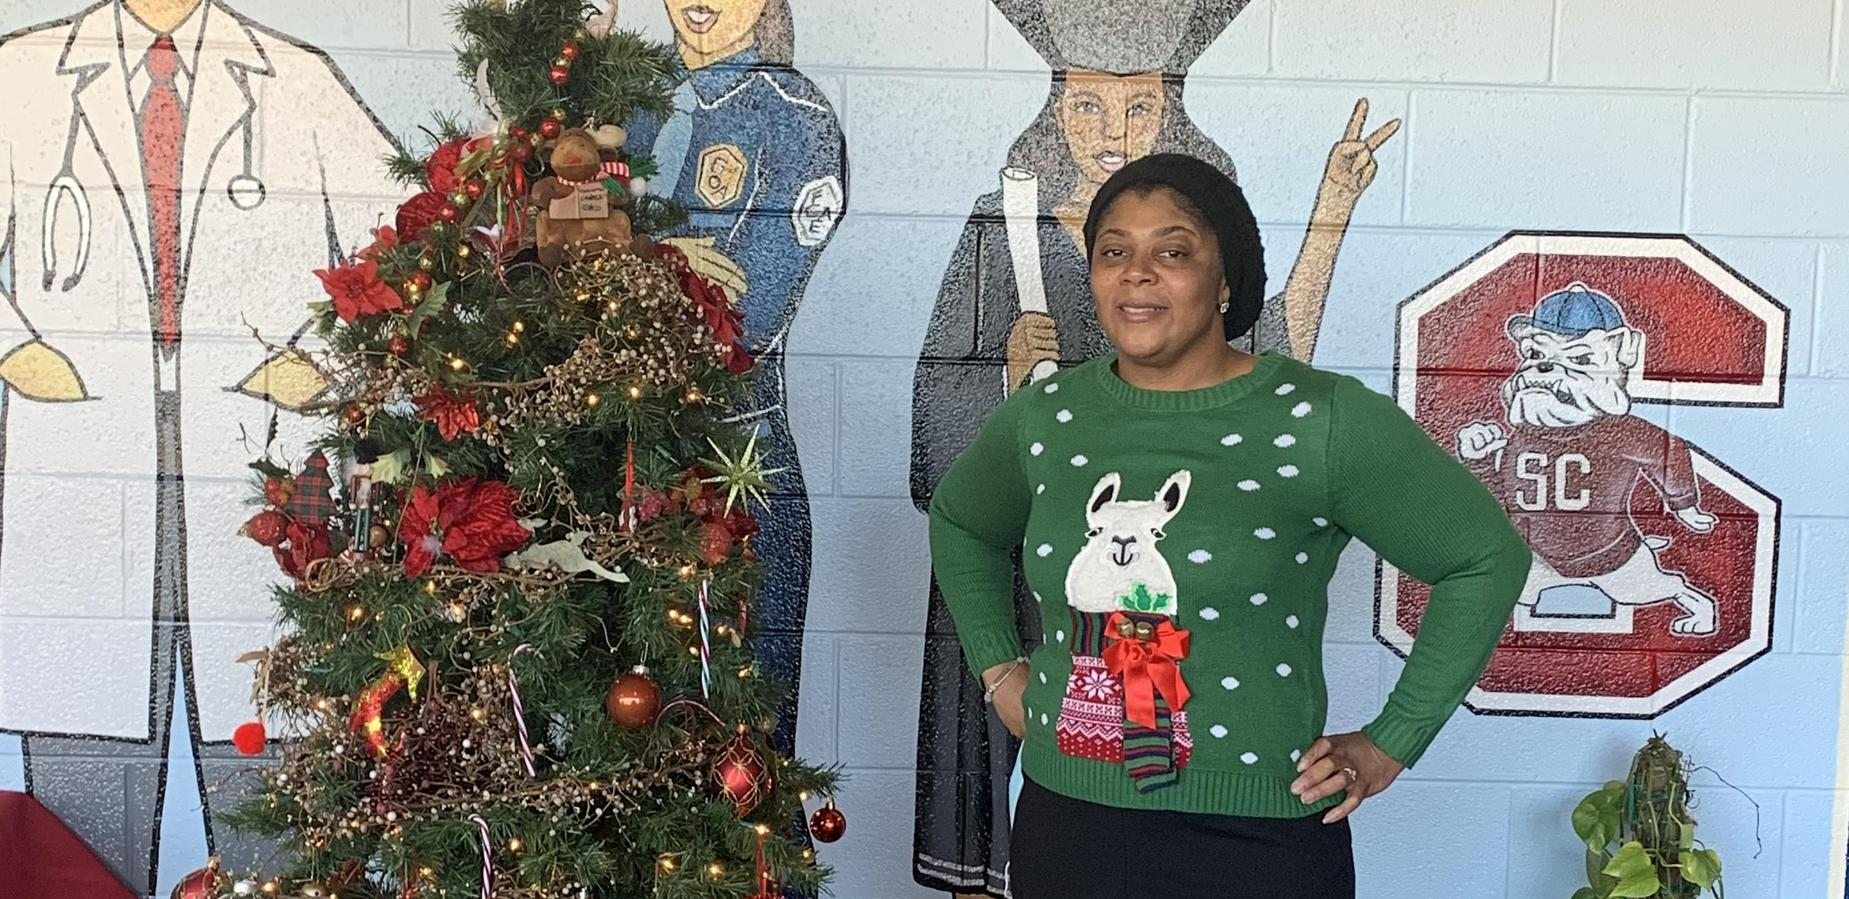 Mrs. Harris beautiful in her ugly Christmas sweater!